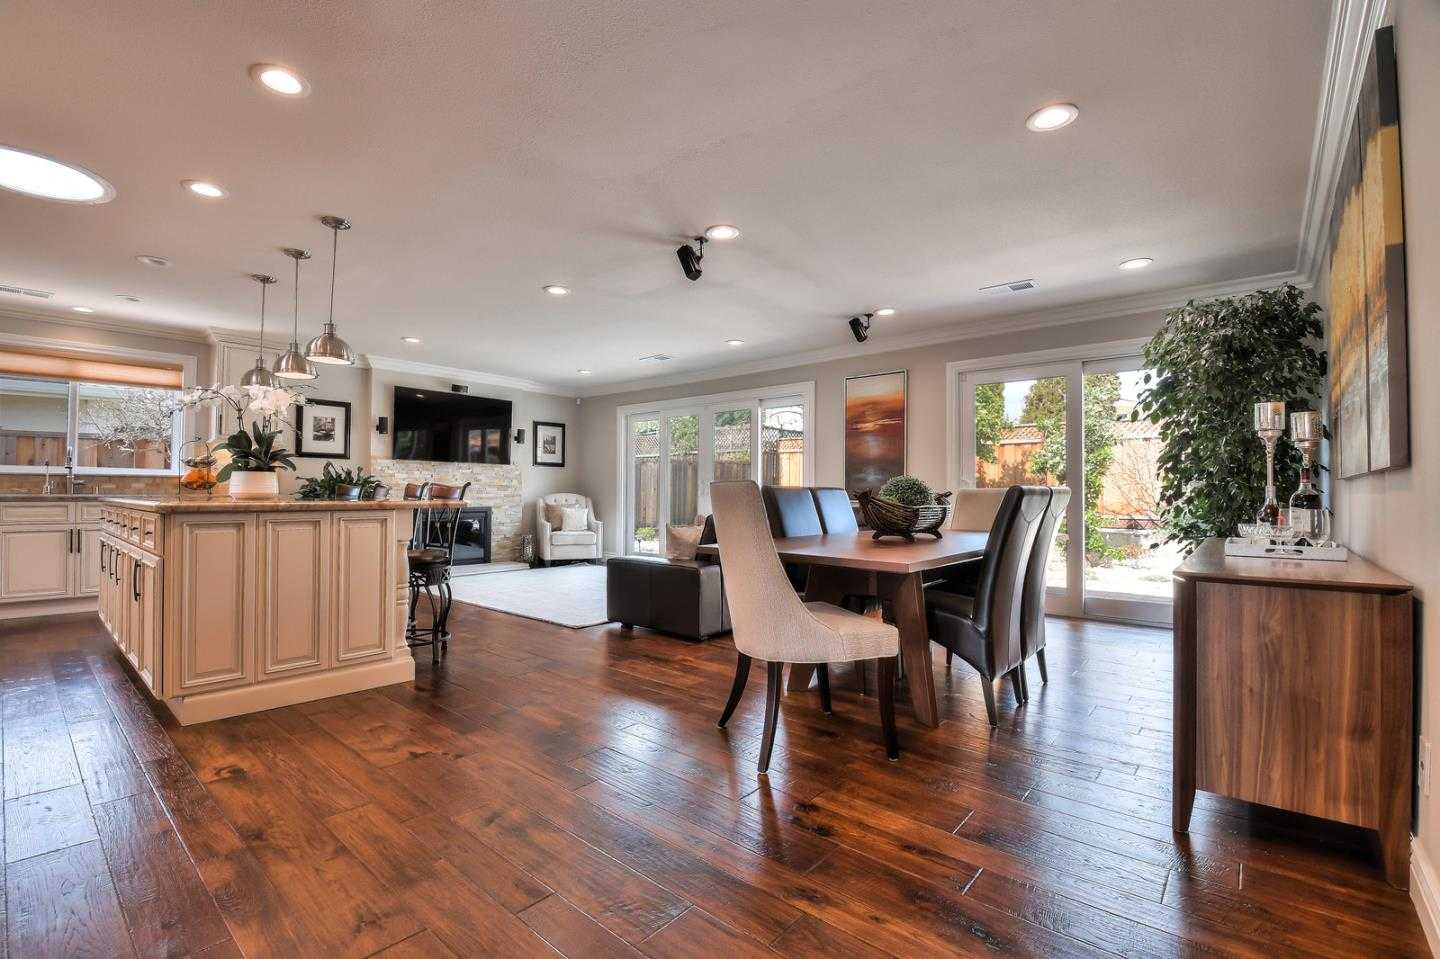 $1,699,000 - 3Br/2Ba -  for Sale in Campbell